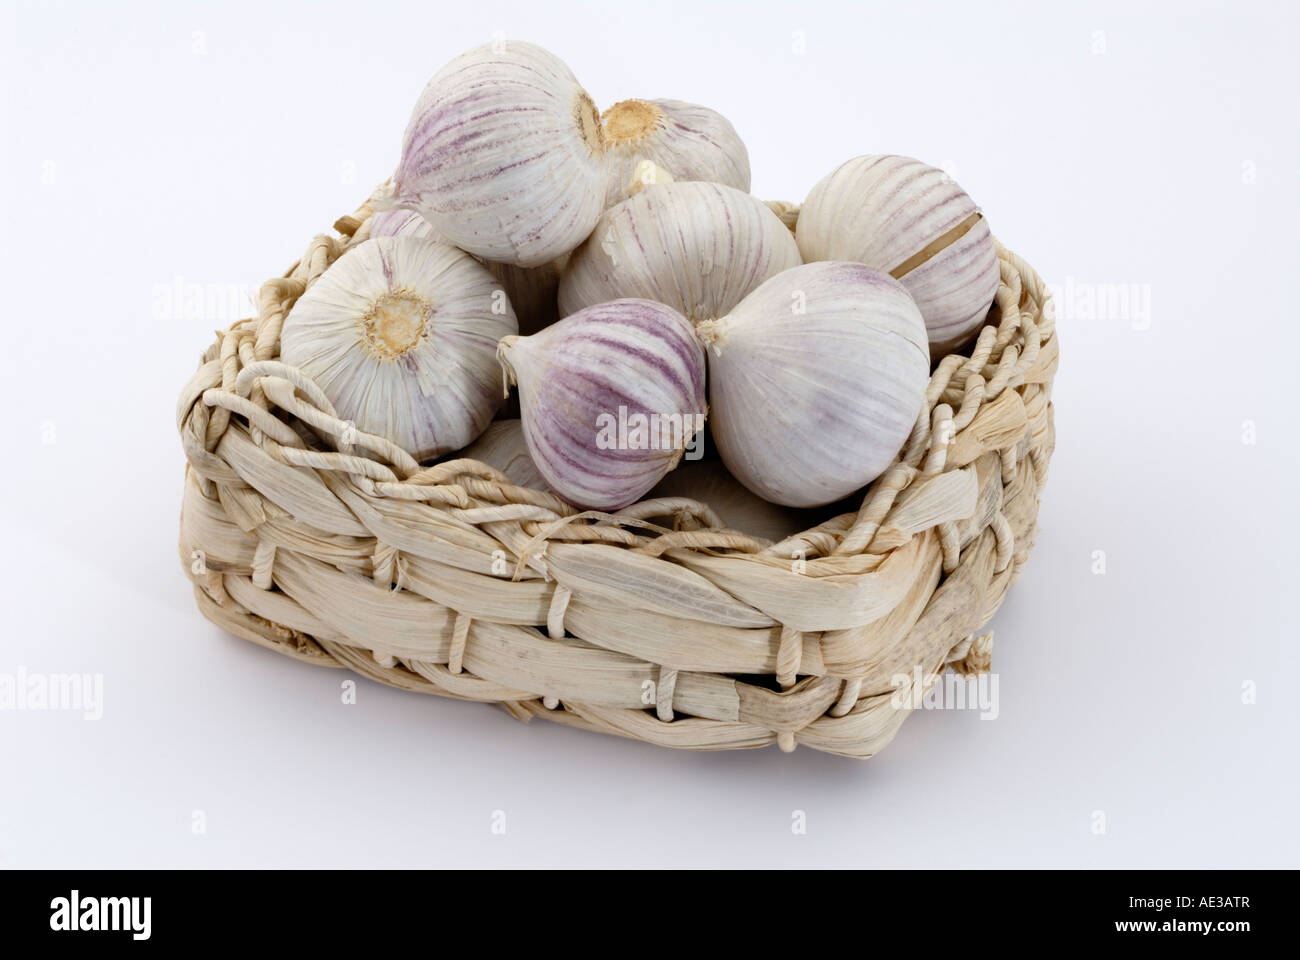 Elephant Garlic, Russian Garlic (Allium ampeloprasum), bulbs in a small basket, studio picture - Stock Image